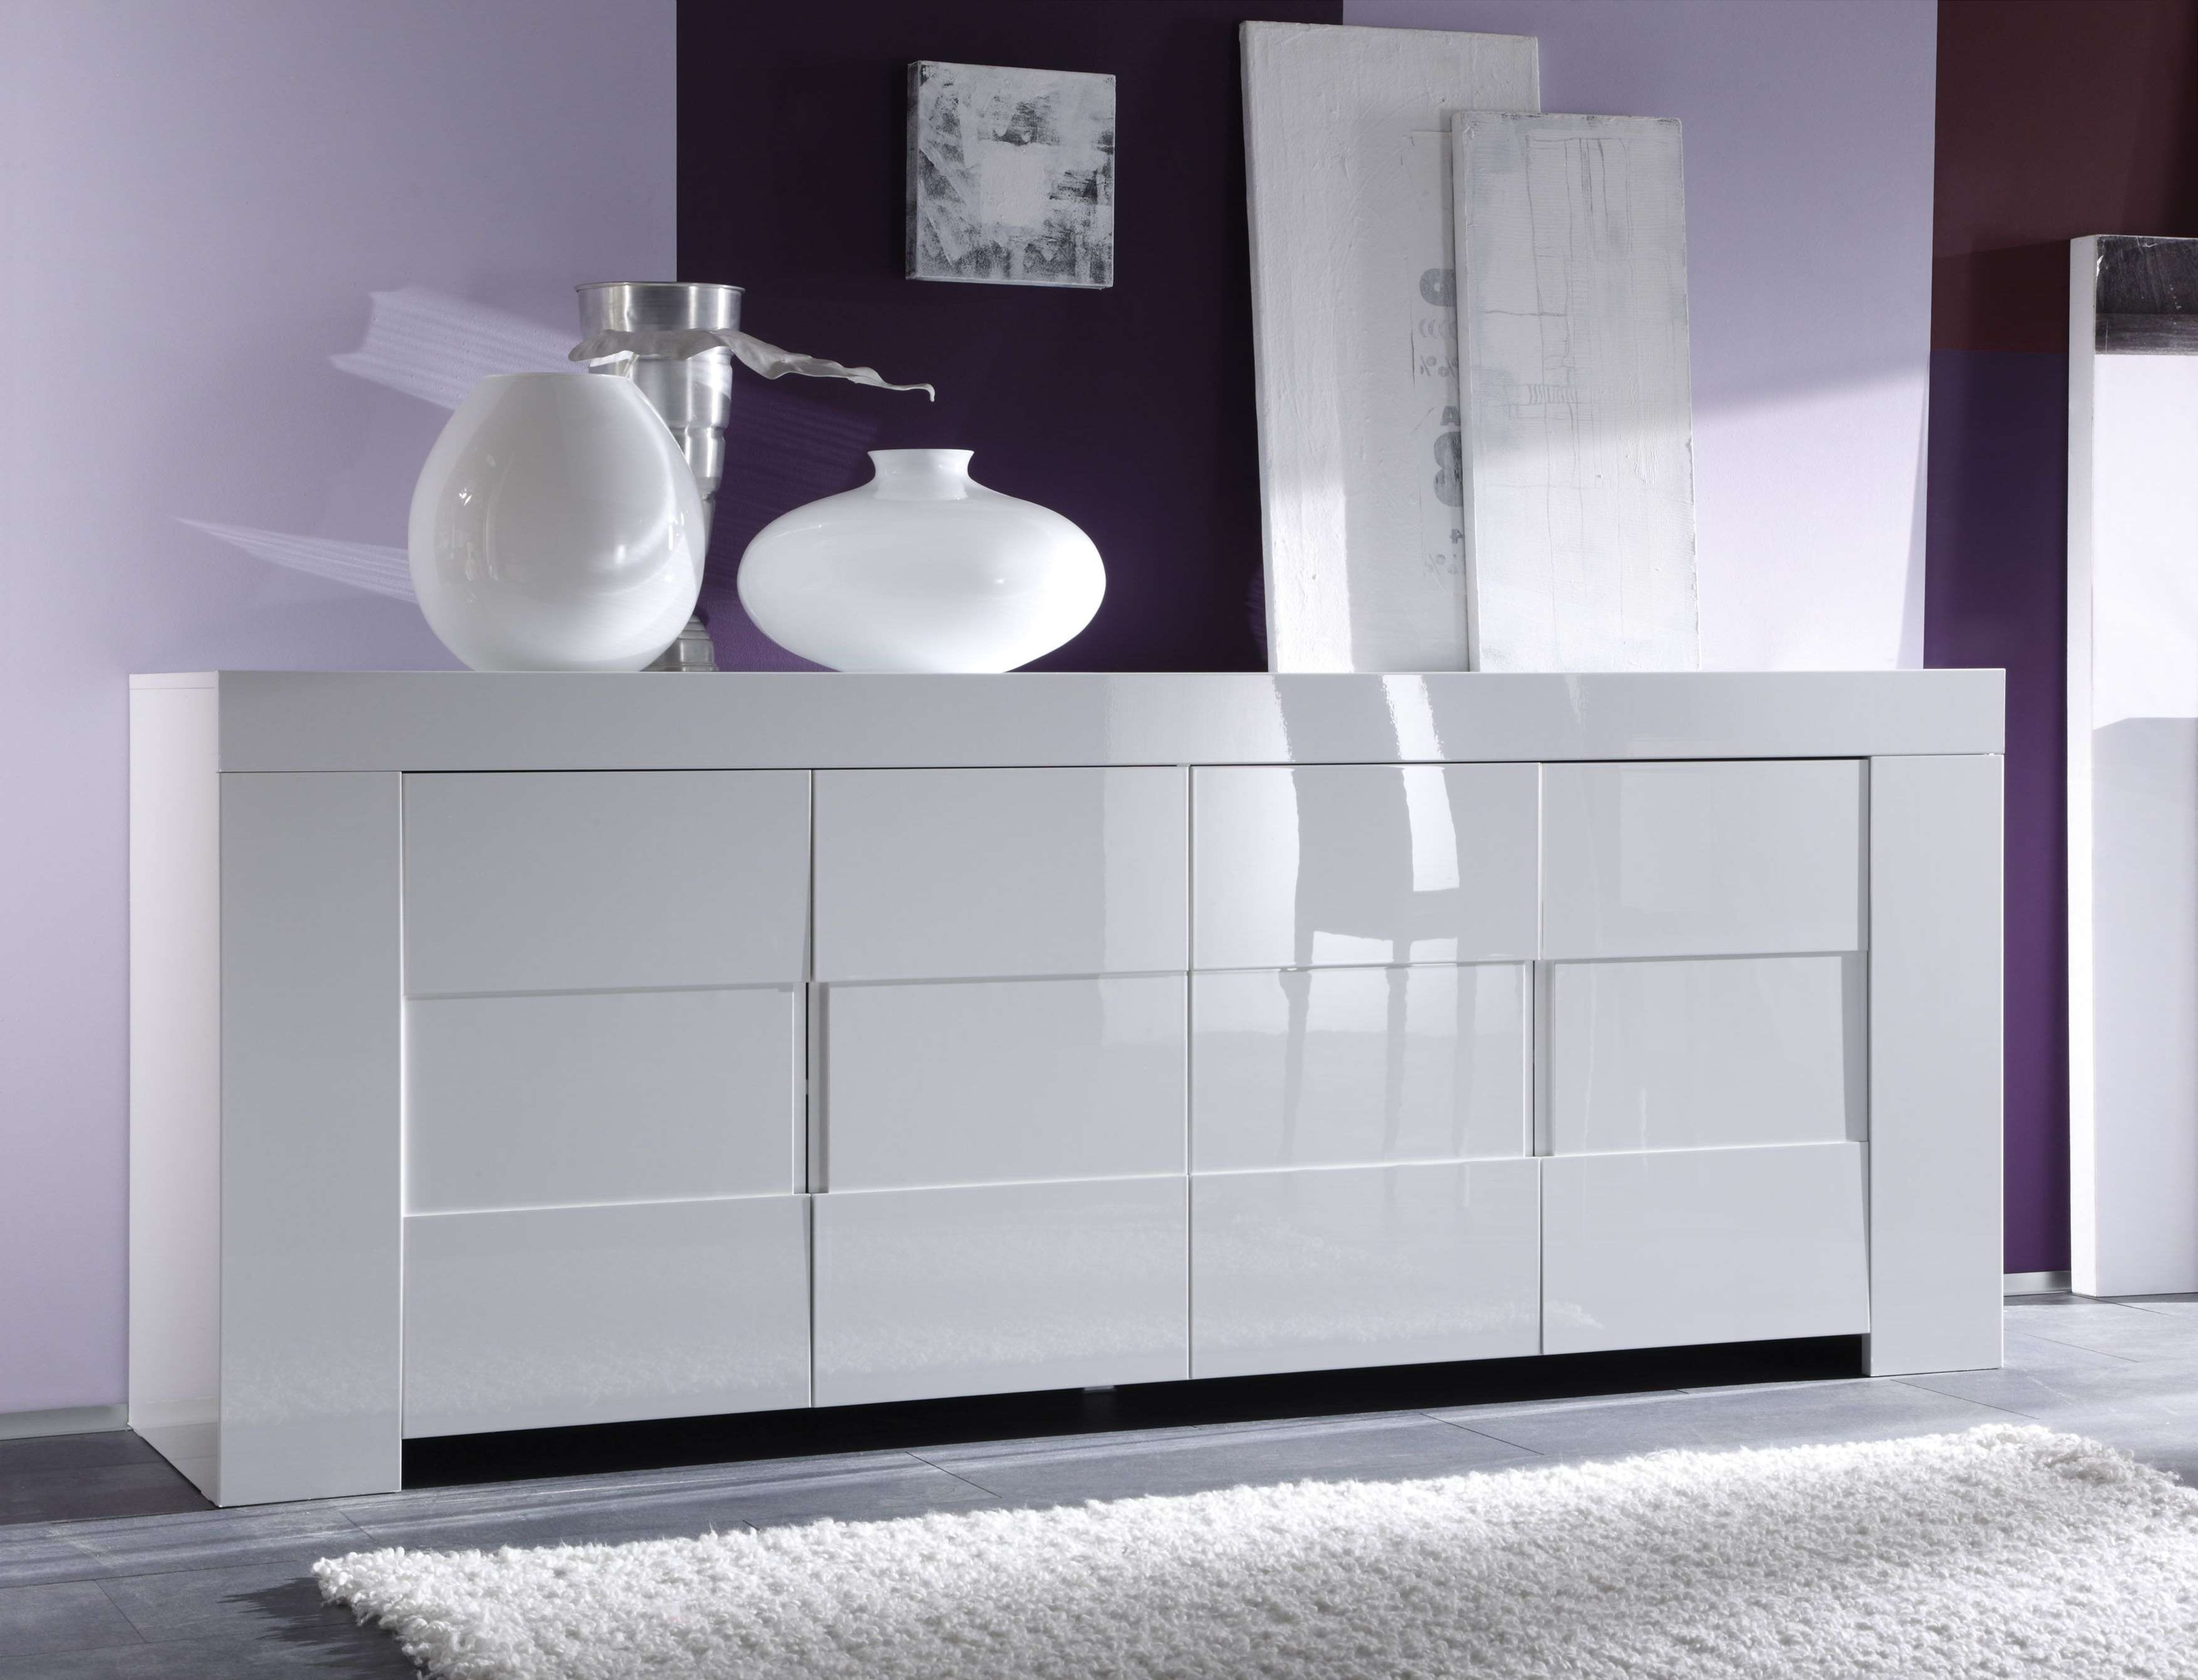 Italian Four Door High Gloss White Or Oak Veneer Buffet Sidaboard Intended For High White Gloss Sideboards (View 15 of 20)